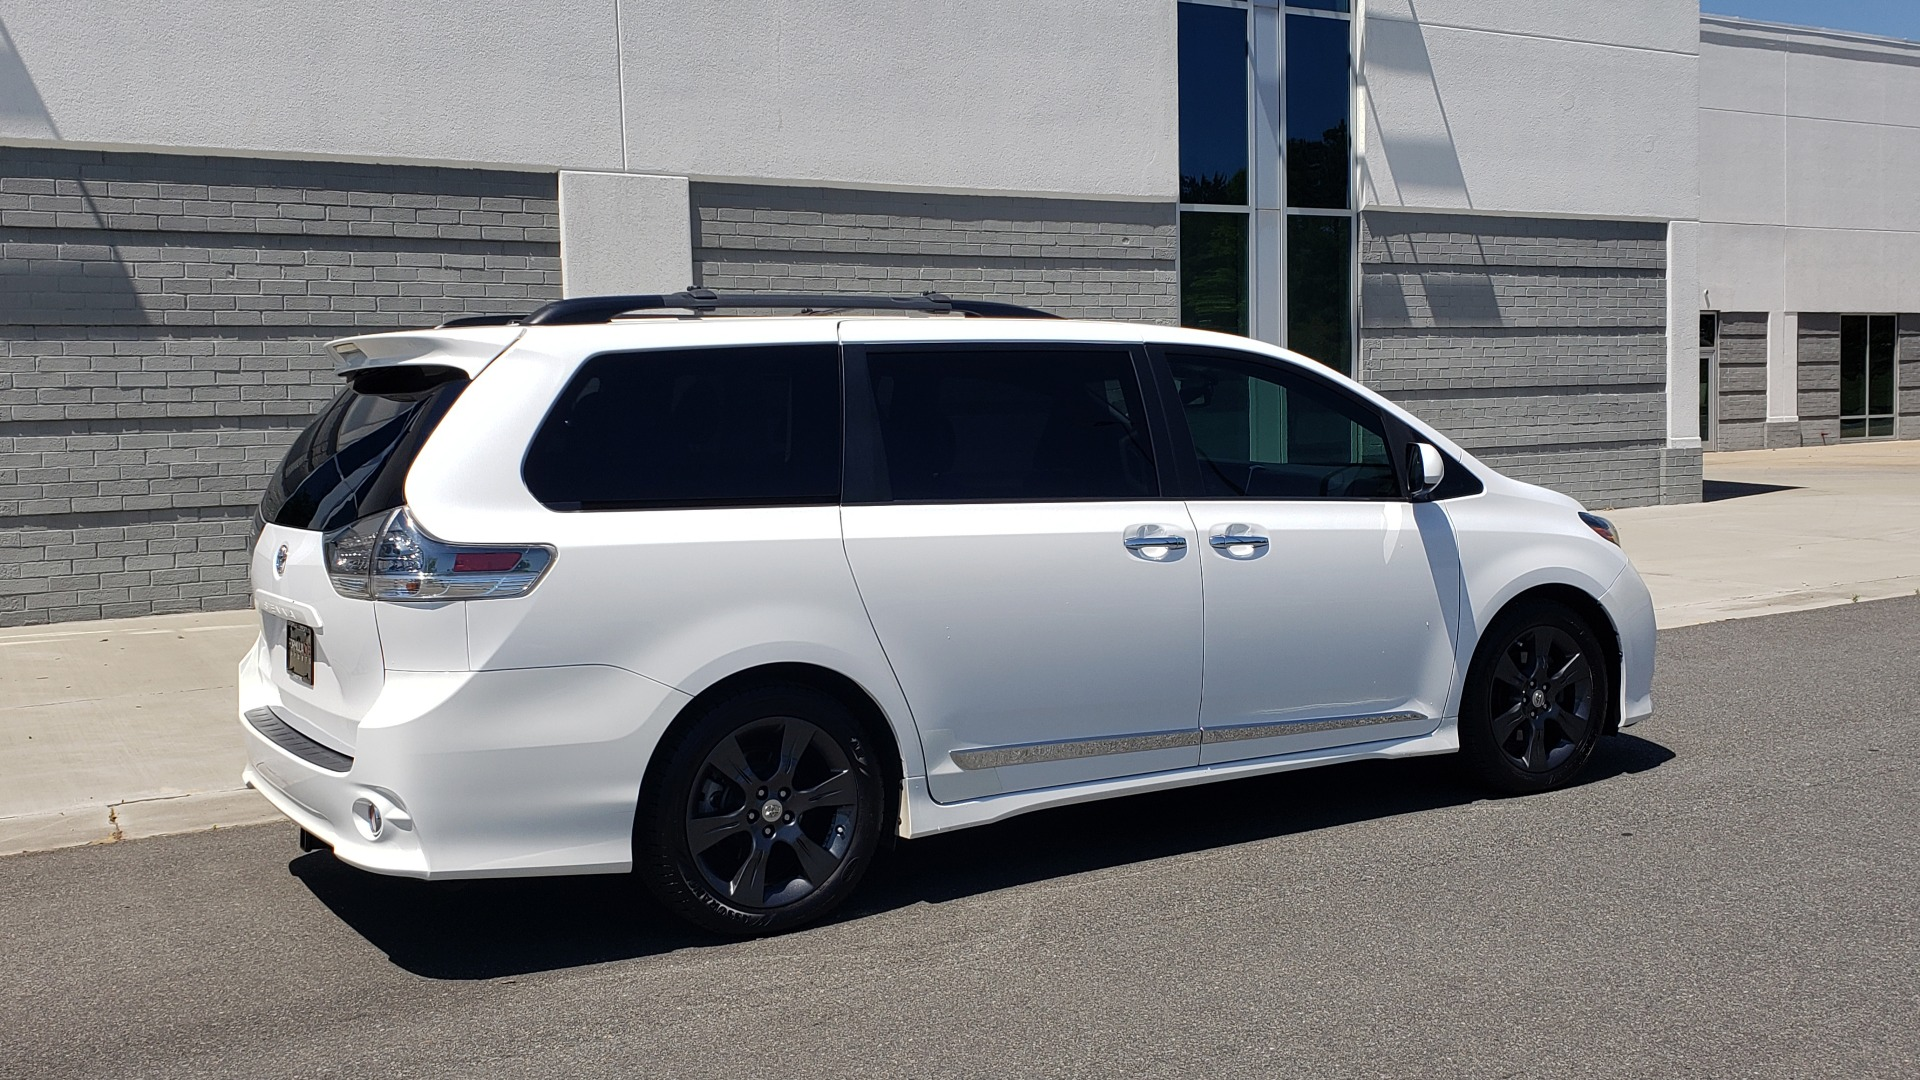 Used 2015 Toyota SIENNA SE 3.5L / FWD / 3-ROWS / 8-PASS / SUNROOF / DVD / REARVIEW for sale $21,995 at Formula Imports in Charlotte NC 28227 9